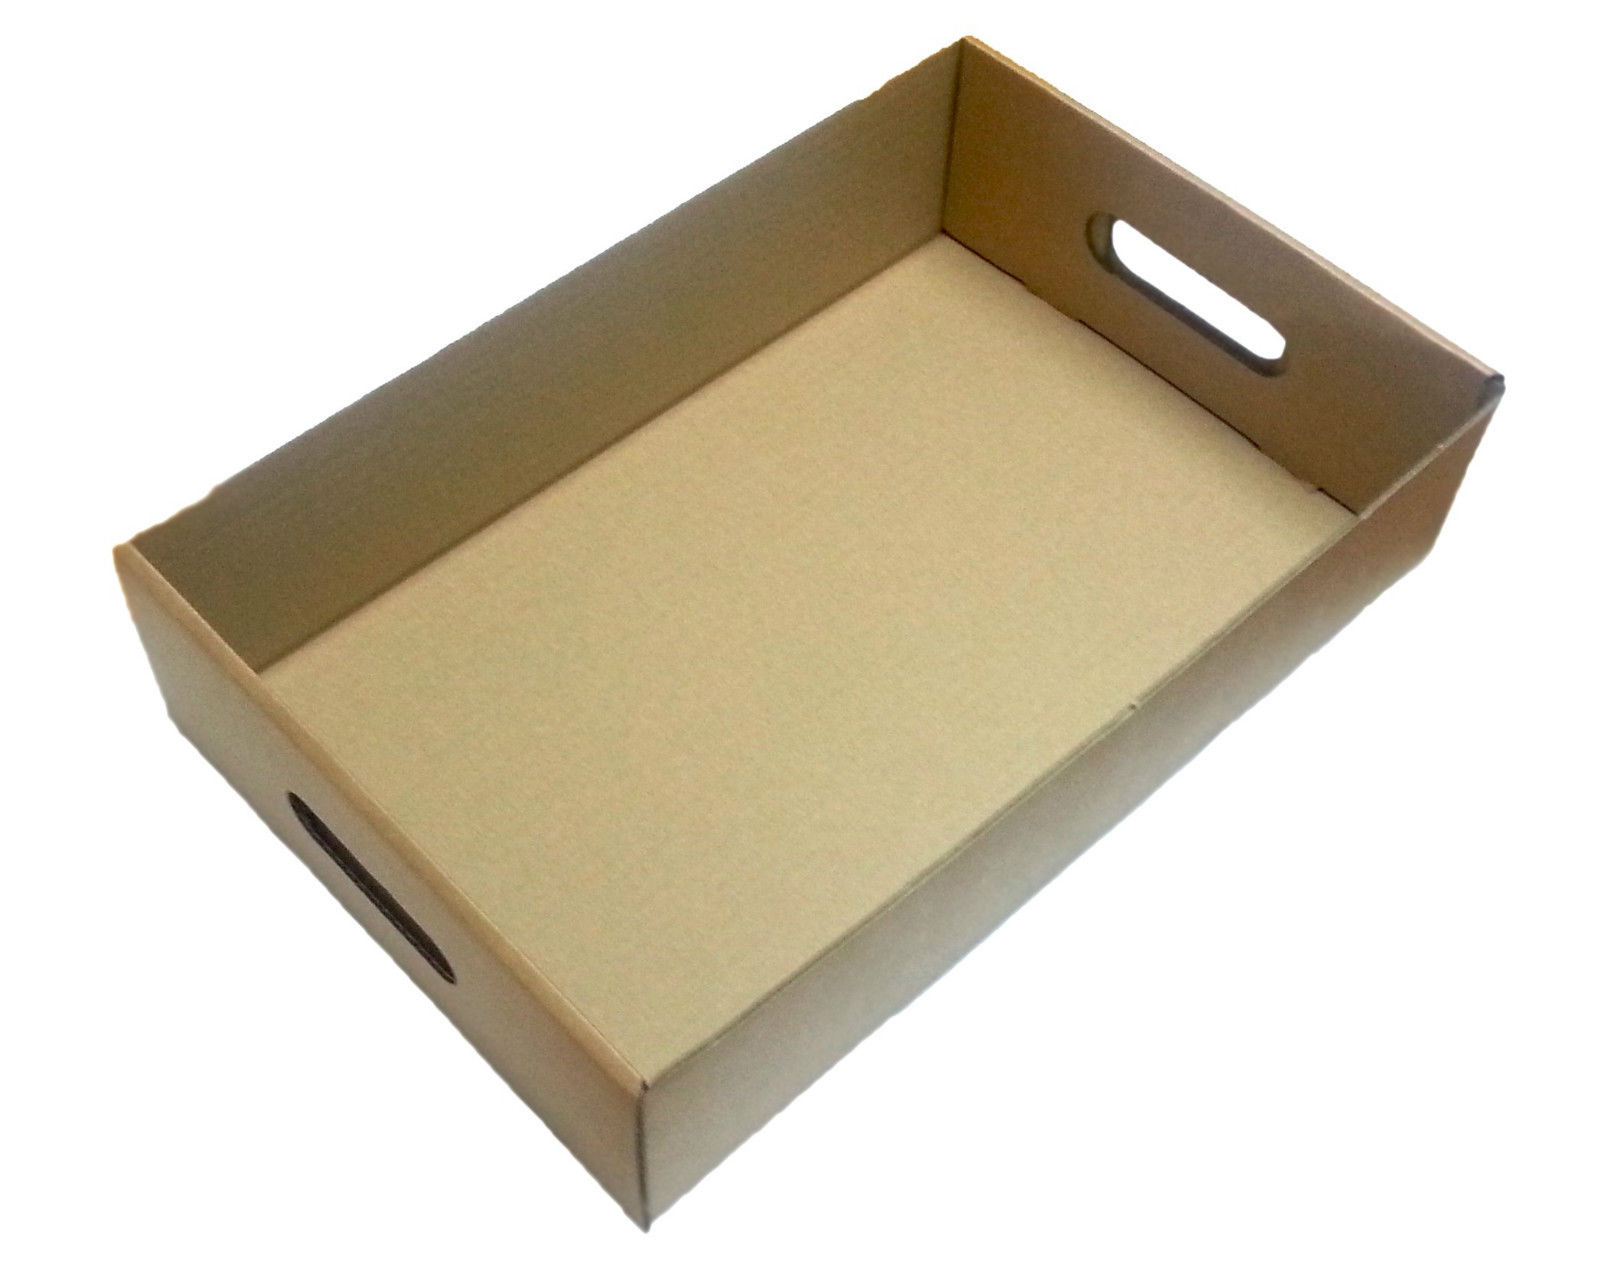 100 x Cardboard Die Cut Produce Trays Drinks Boxes Holds 24 Beer Cans